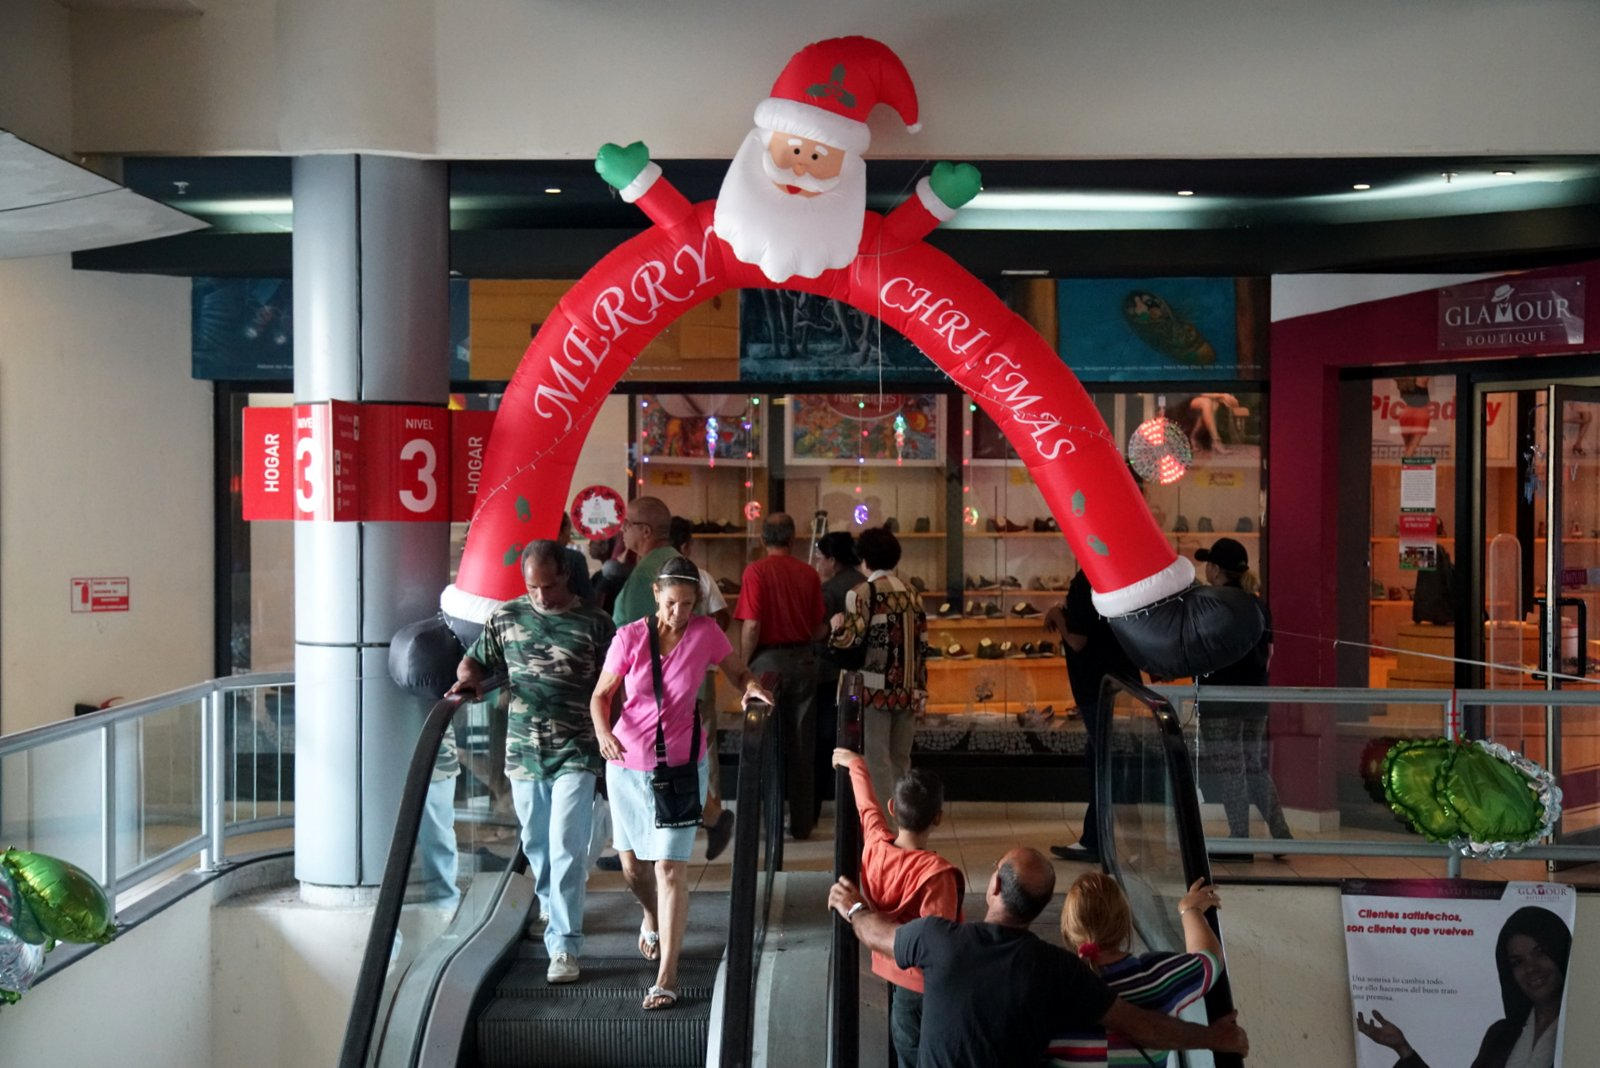 Christmas In Cuba.Christmas Fever Hits Cuba But Gifts Elusive For Many